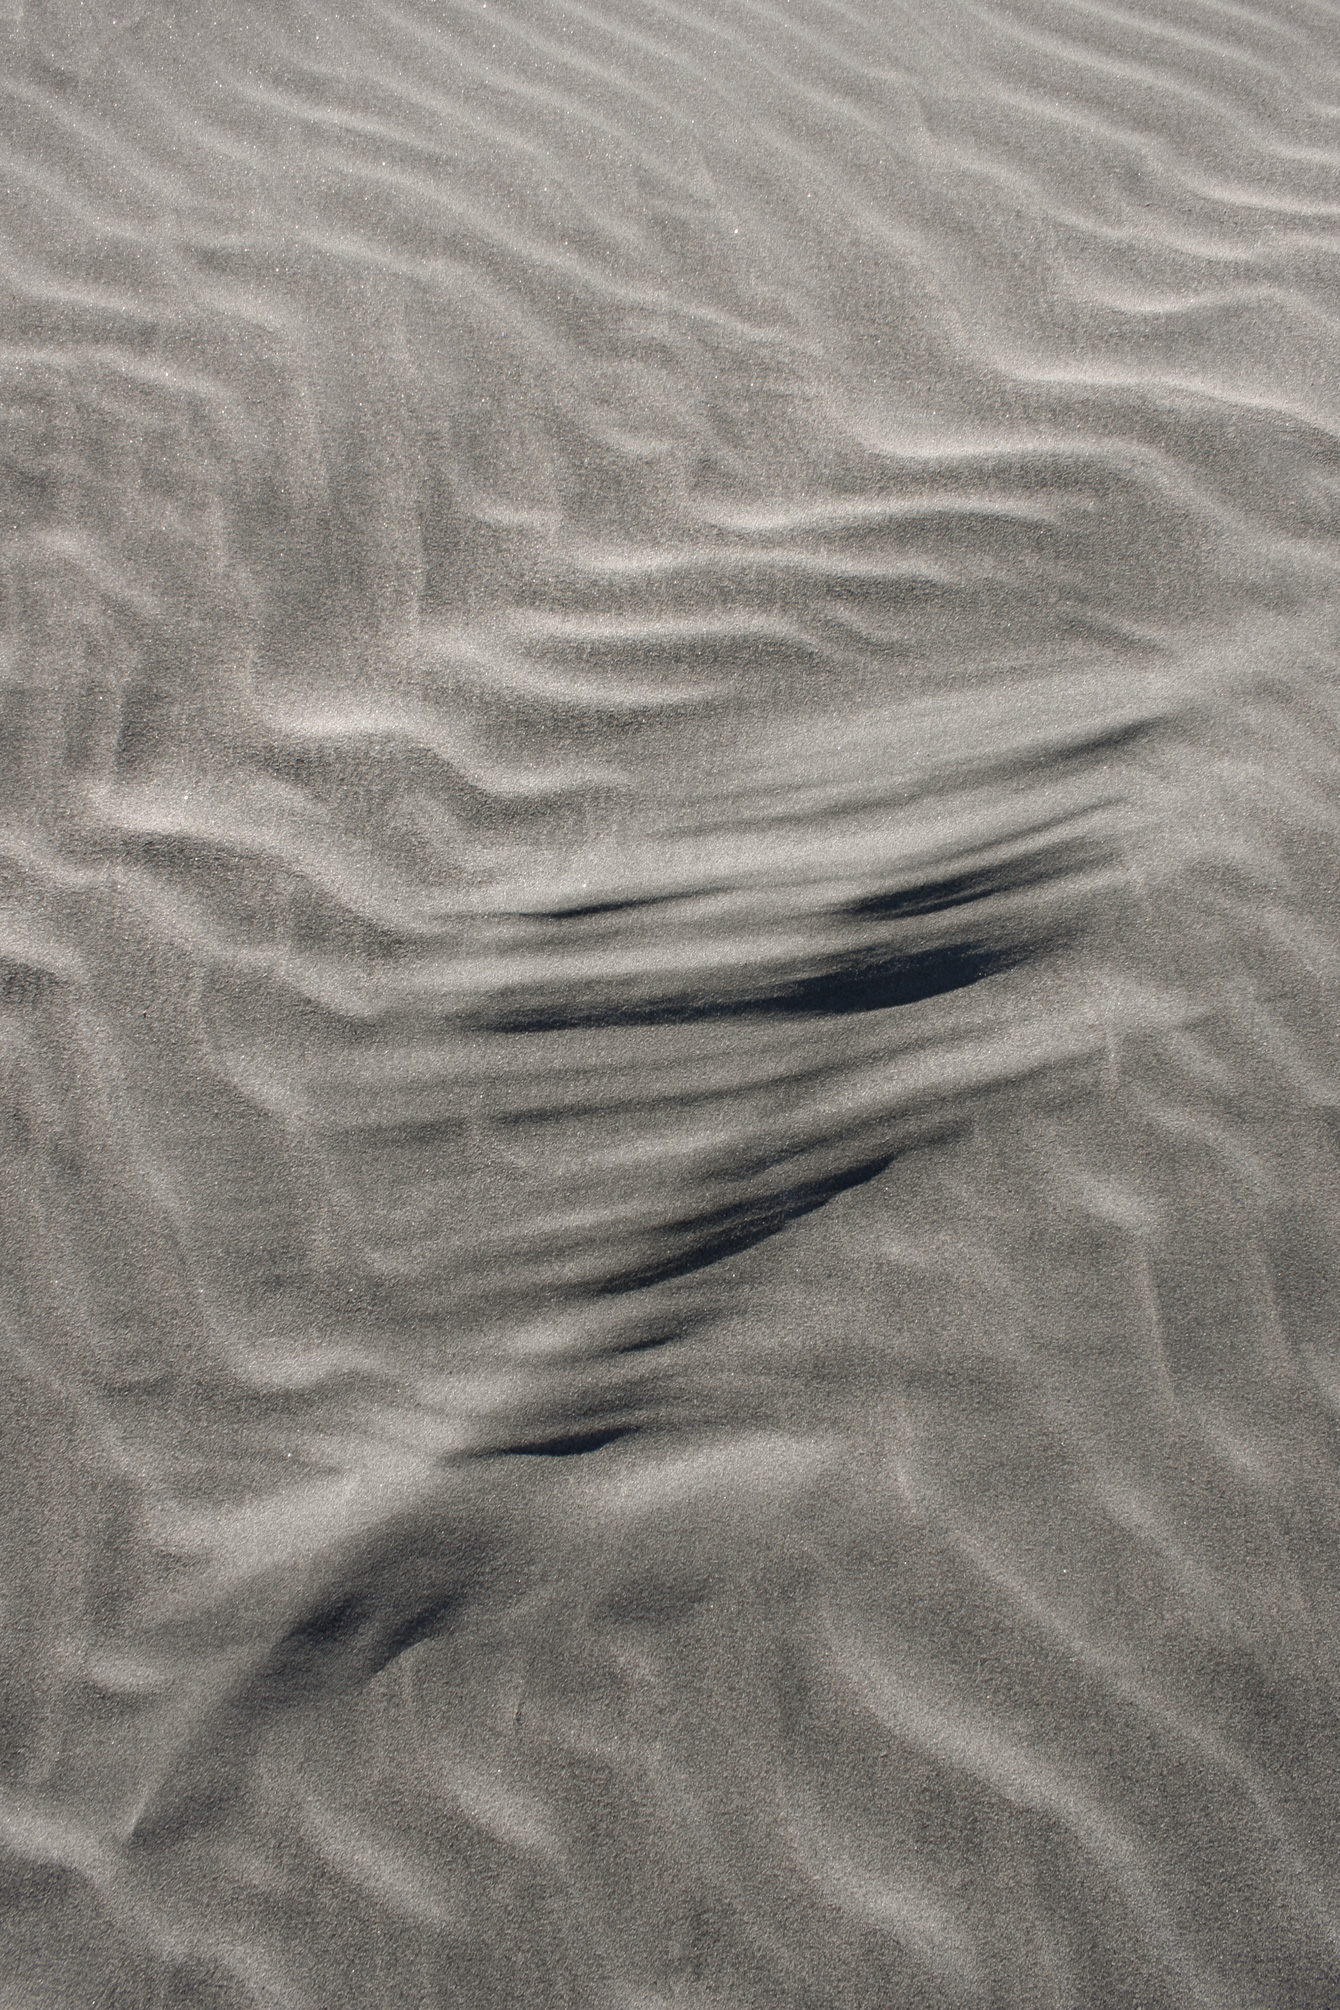 sand-wind-black-nz